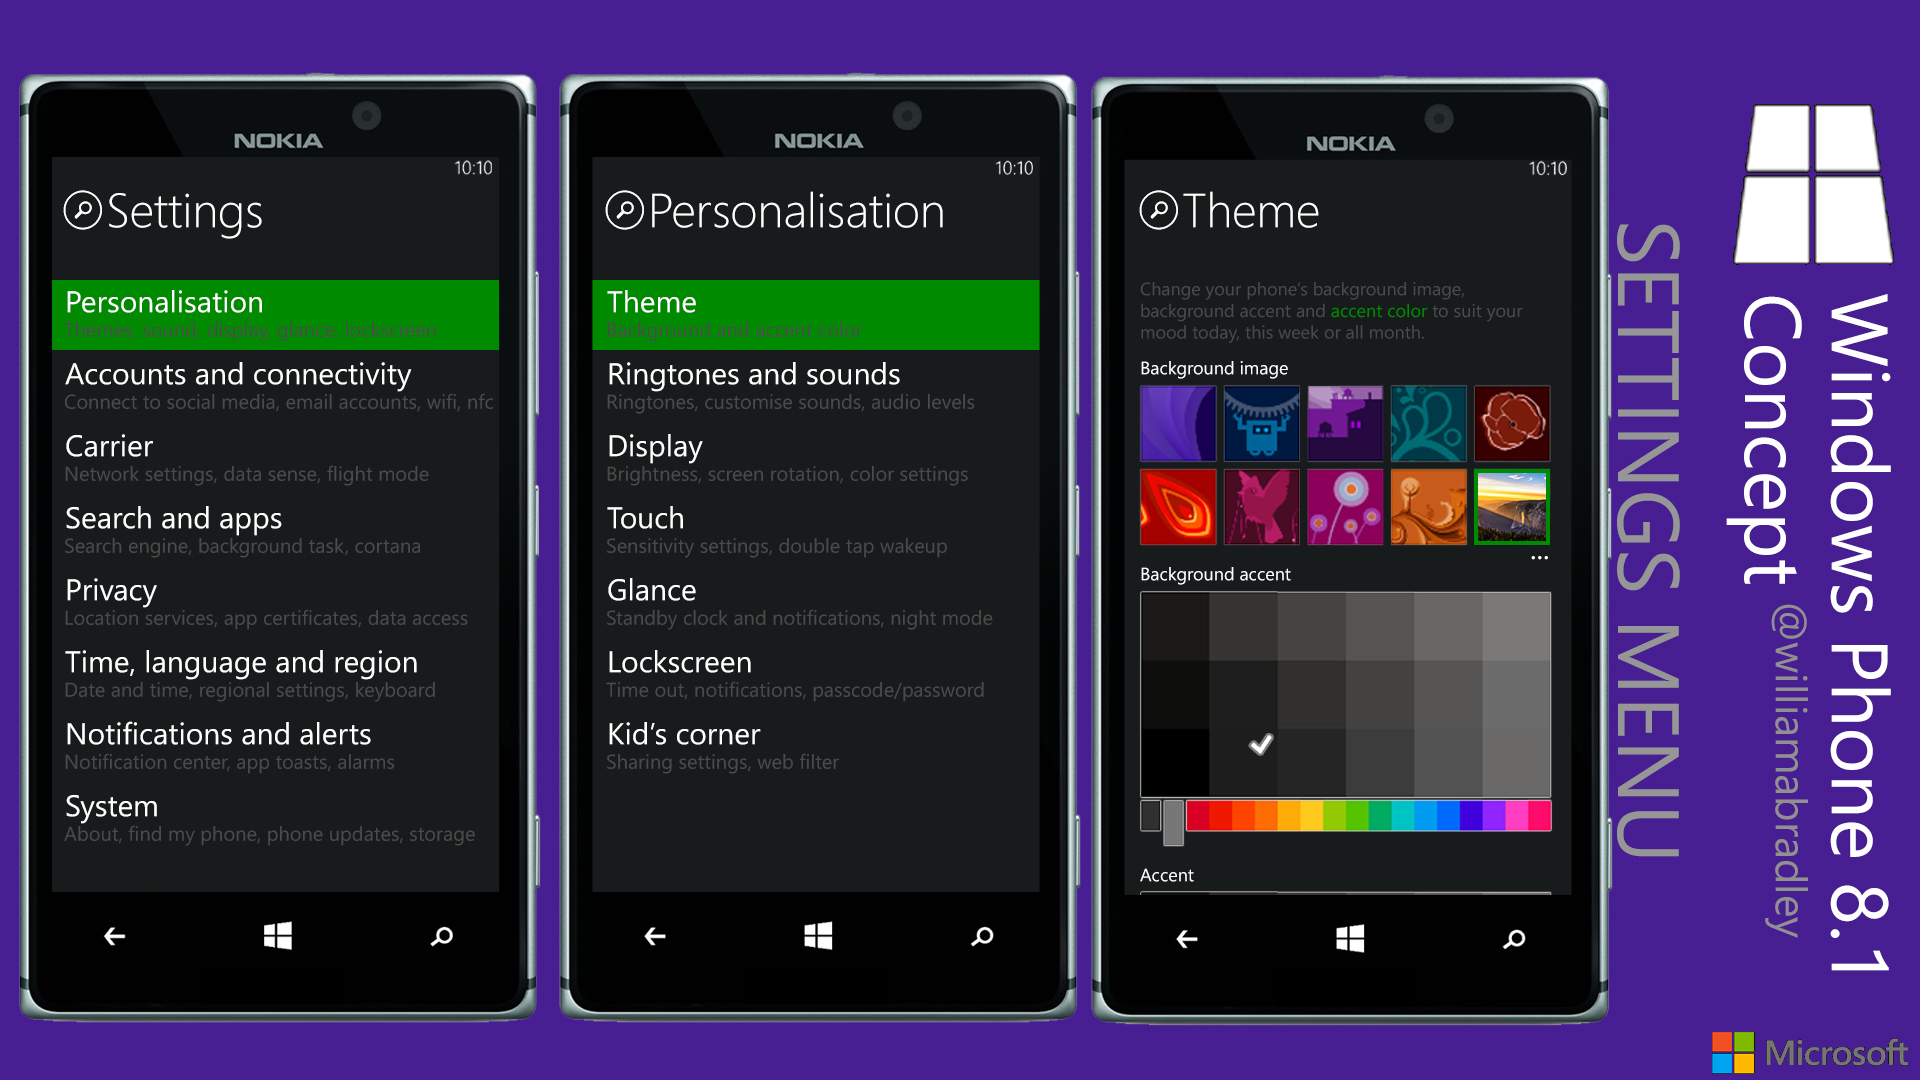 Windows phone 8 1 background image -  Williamabradley Windows Phone 8 1 Settings Menu Concept By Williamabradley